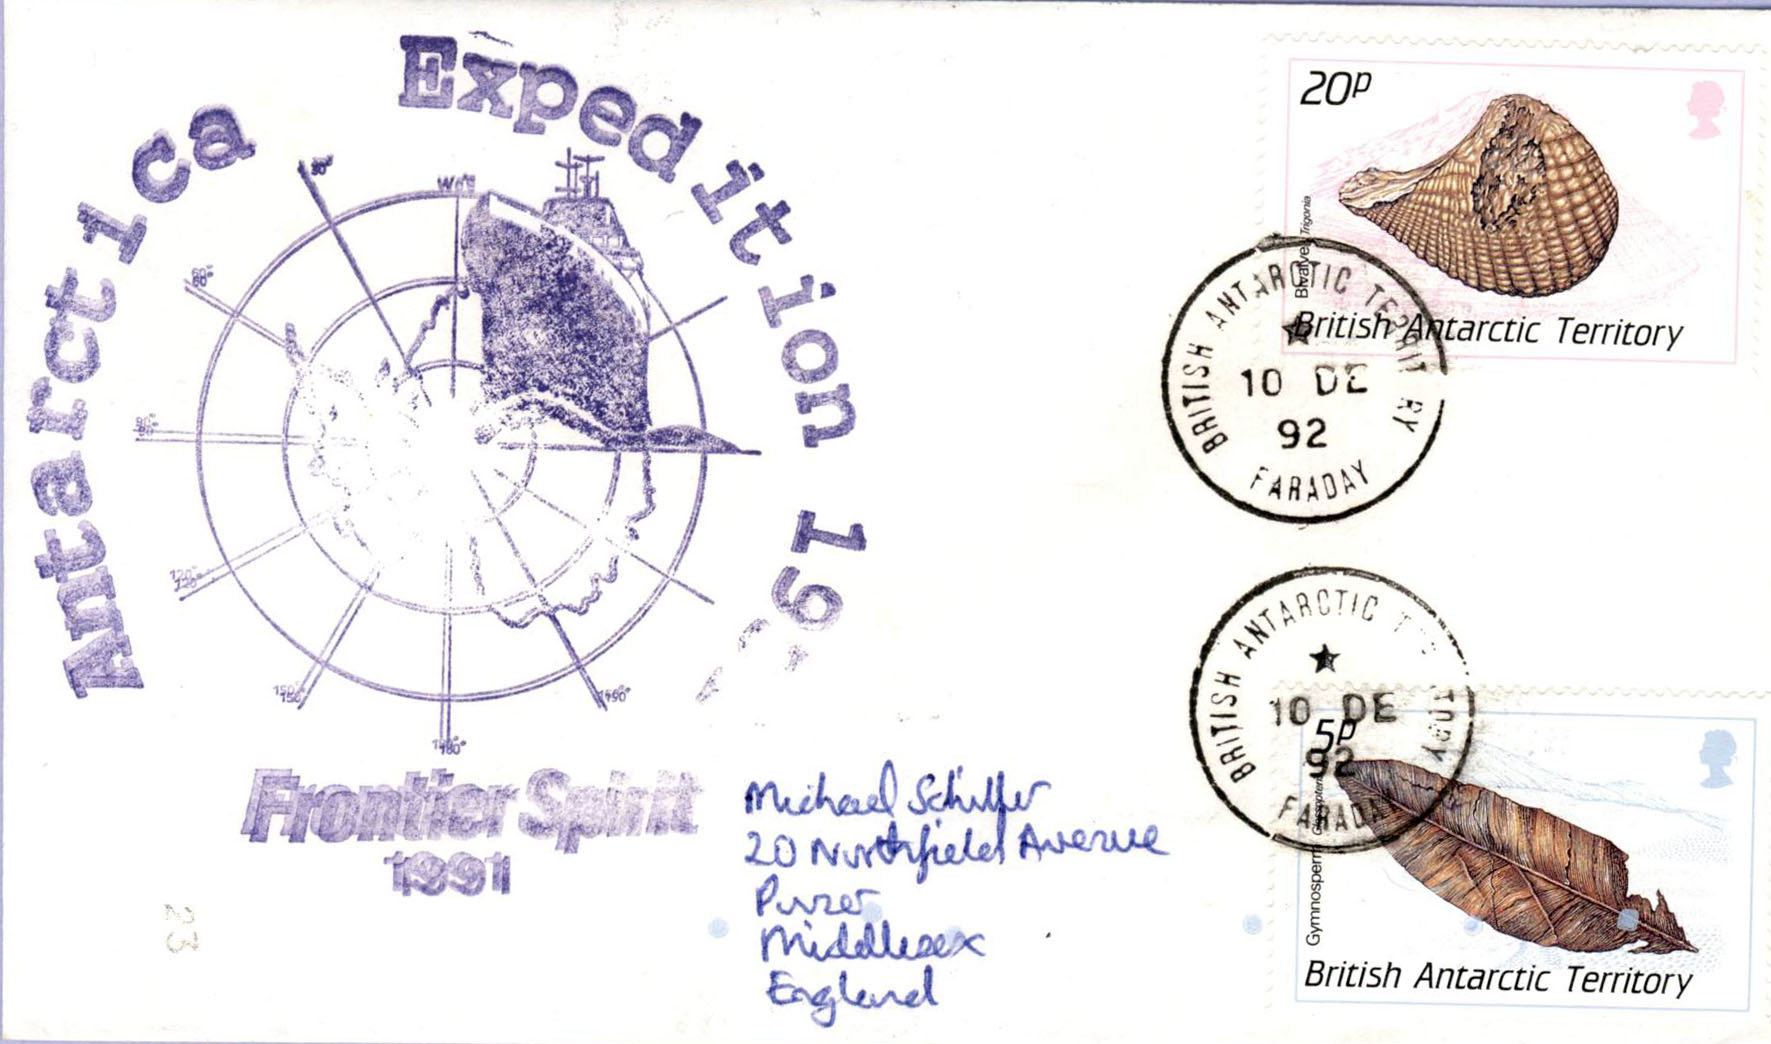 British Antarctic Territory Cover Faraday Frontier